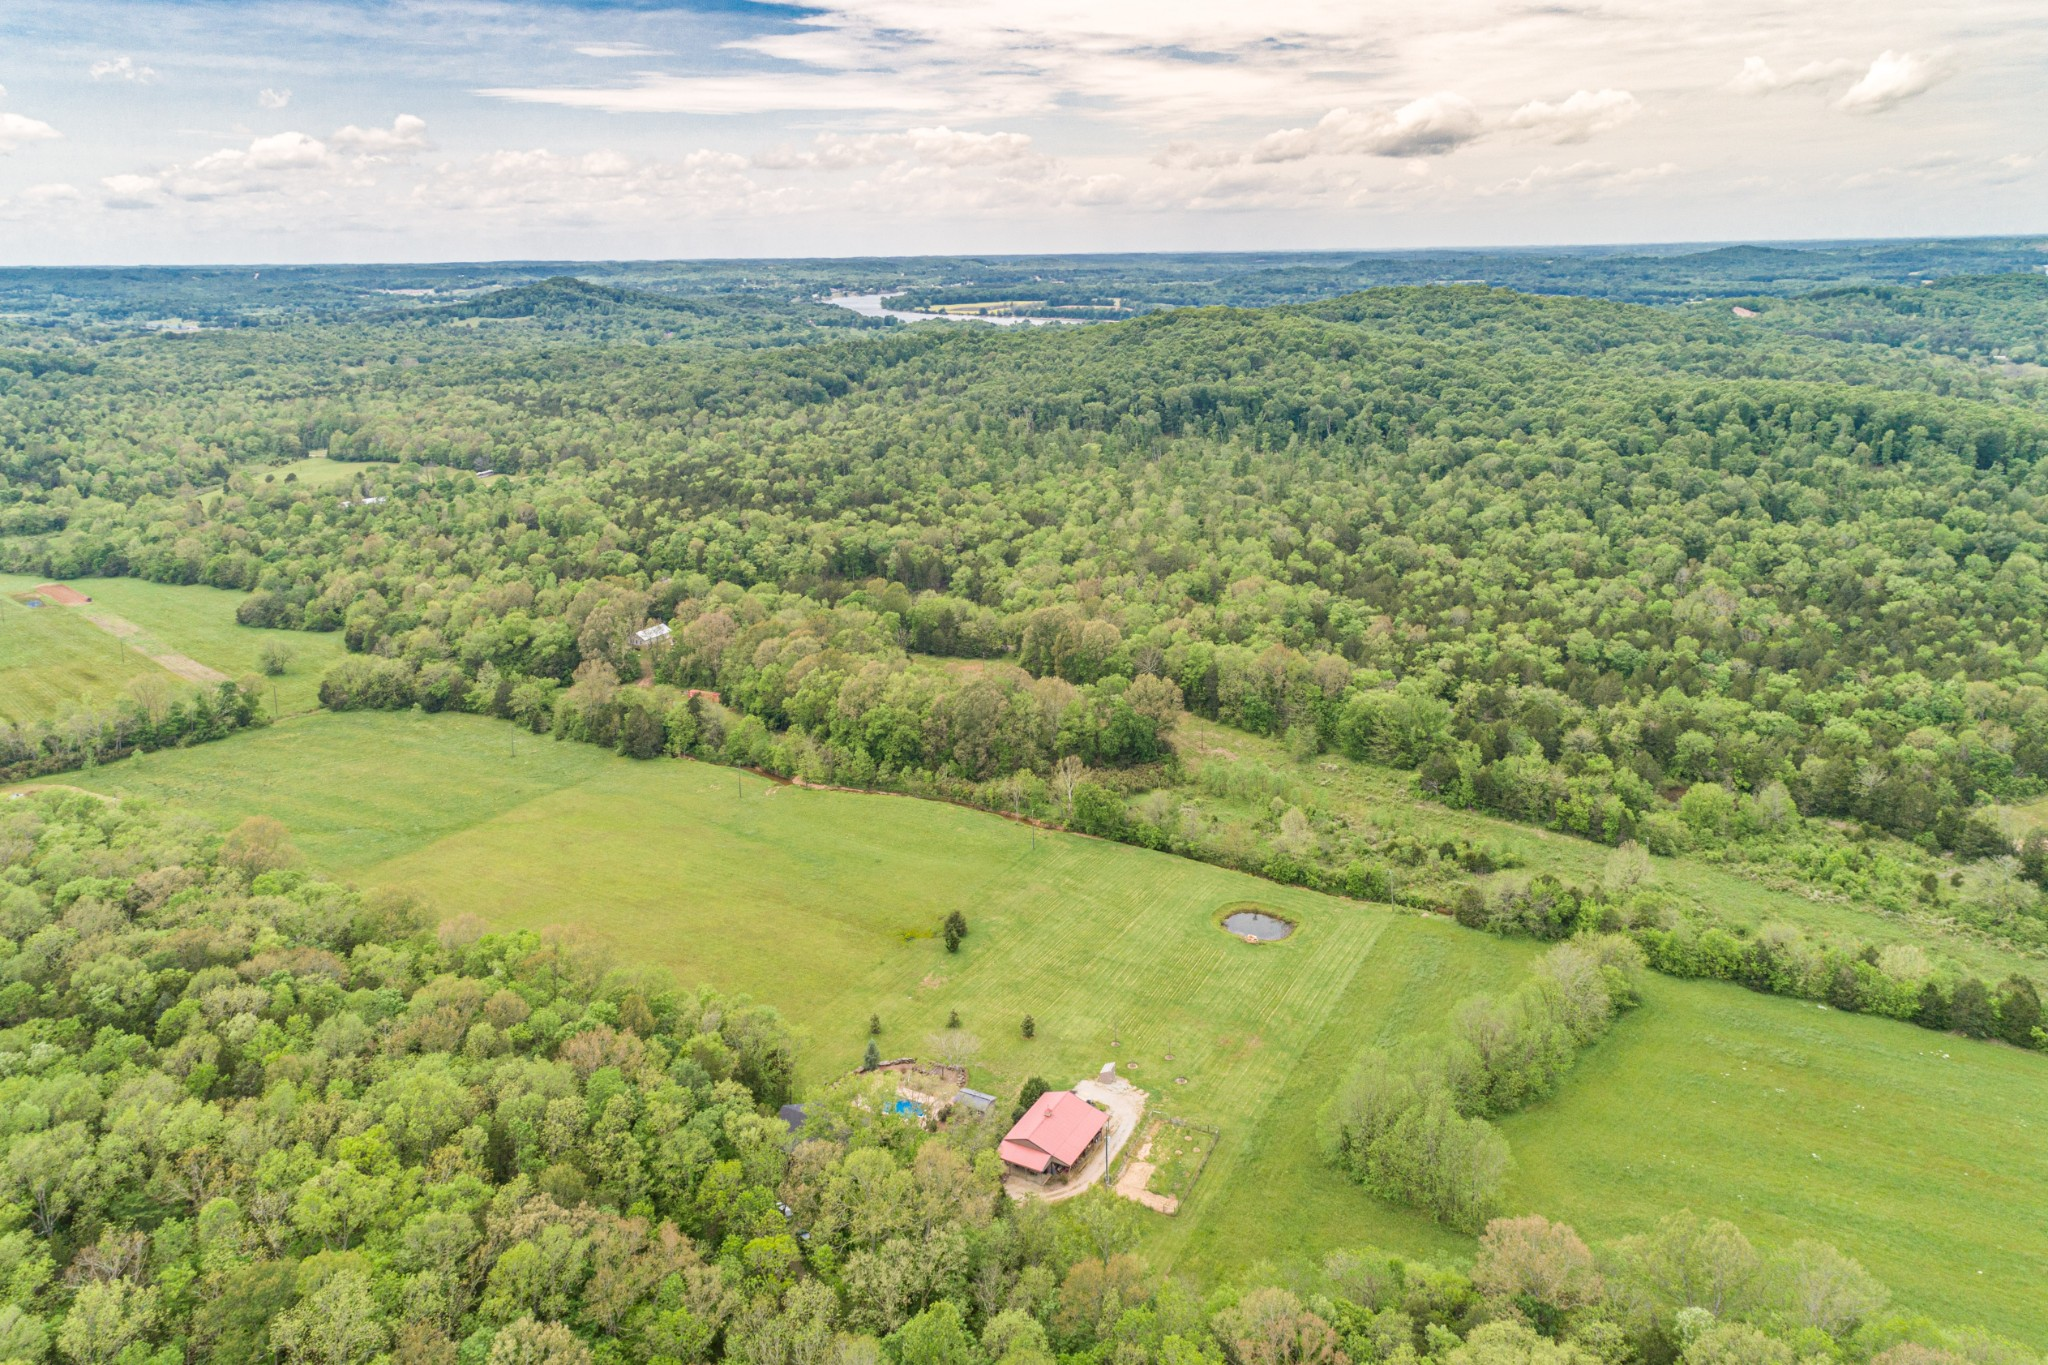 124 Rays Cove, Clifton, TN 38425 - Clifton, TN real estate listing